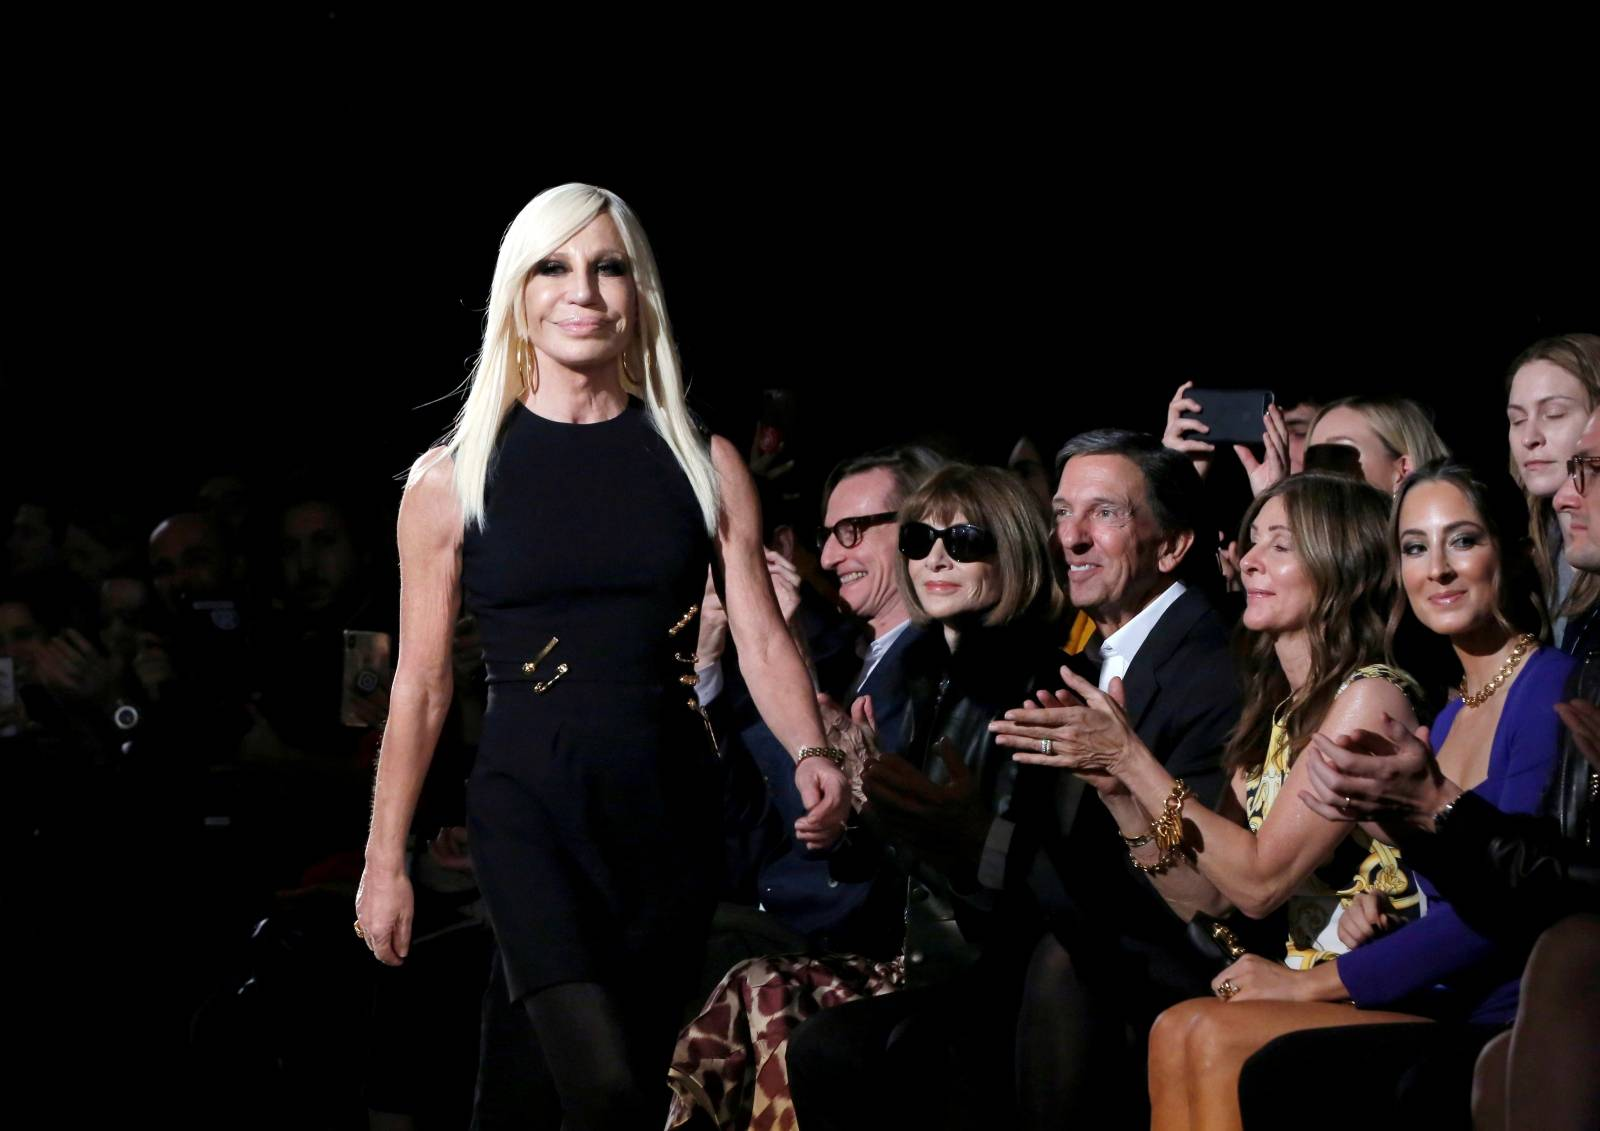 FILE PHOTO: Donatella Versace walks down the catwalk after her Versace presentation in New York